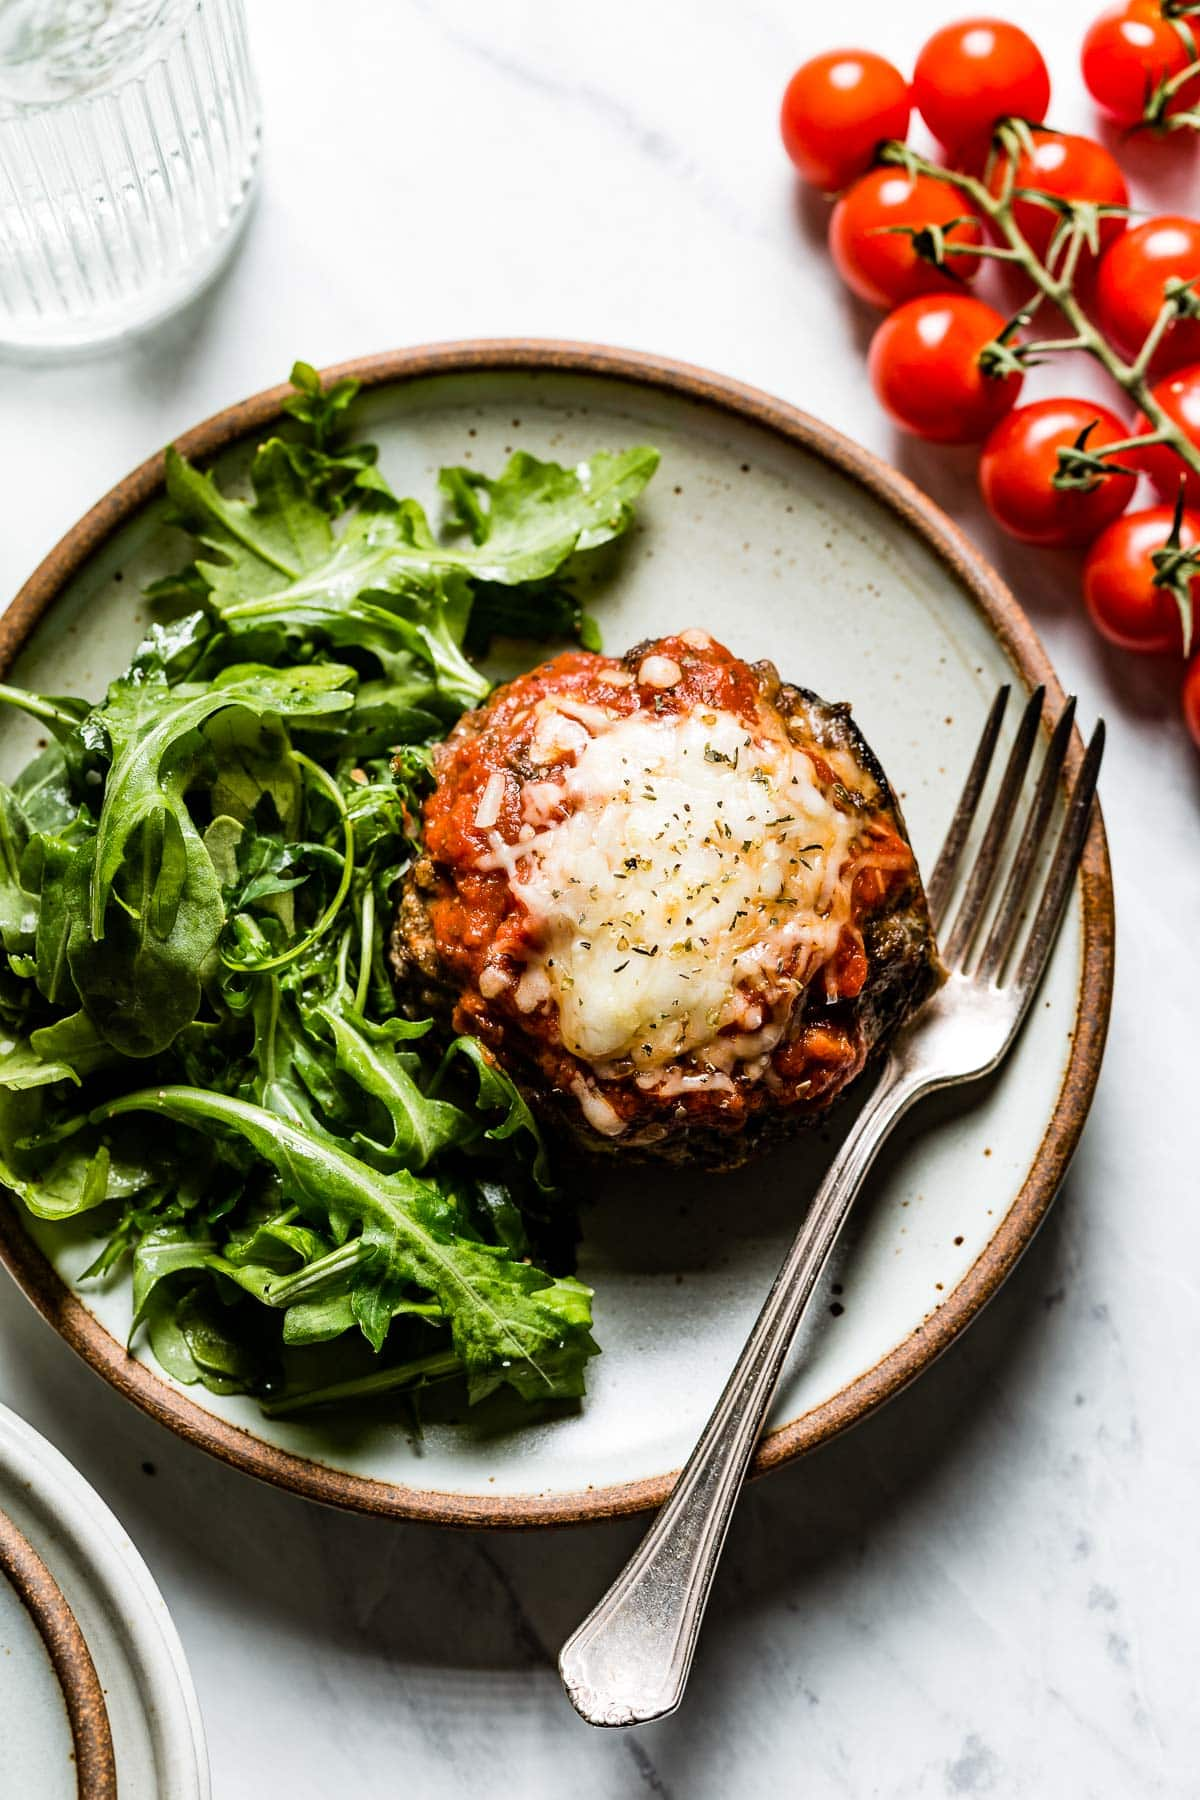 a plate with arugula salad and stuffed mushroom with tomato sauce and cheese melted on top